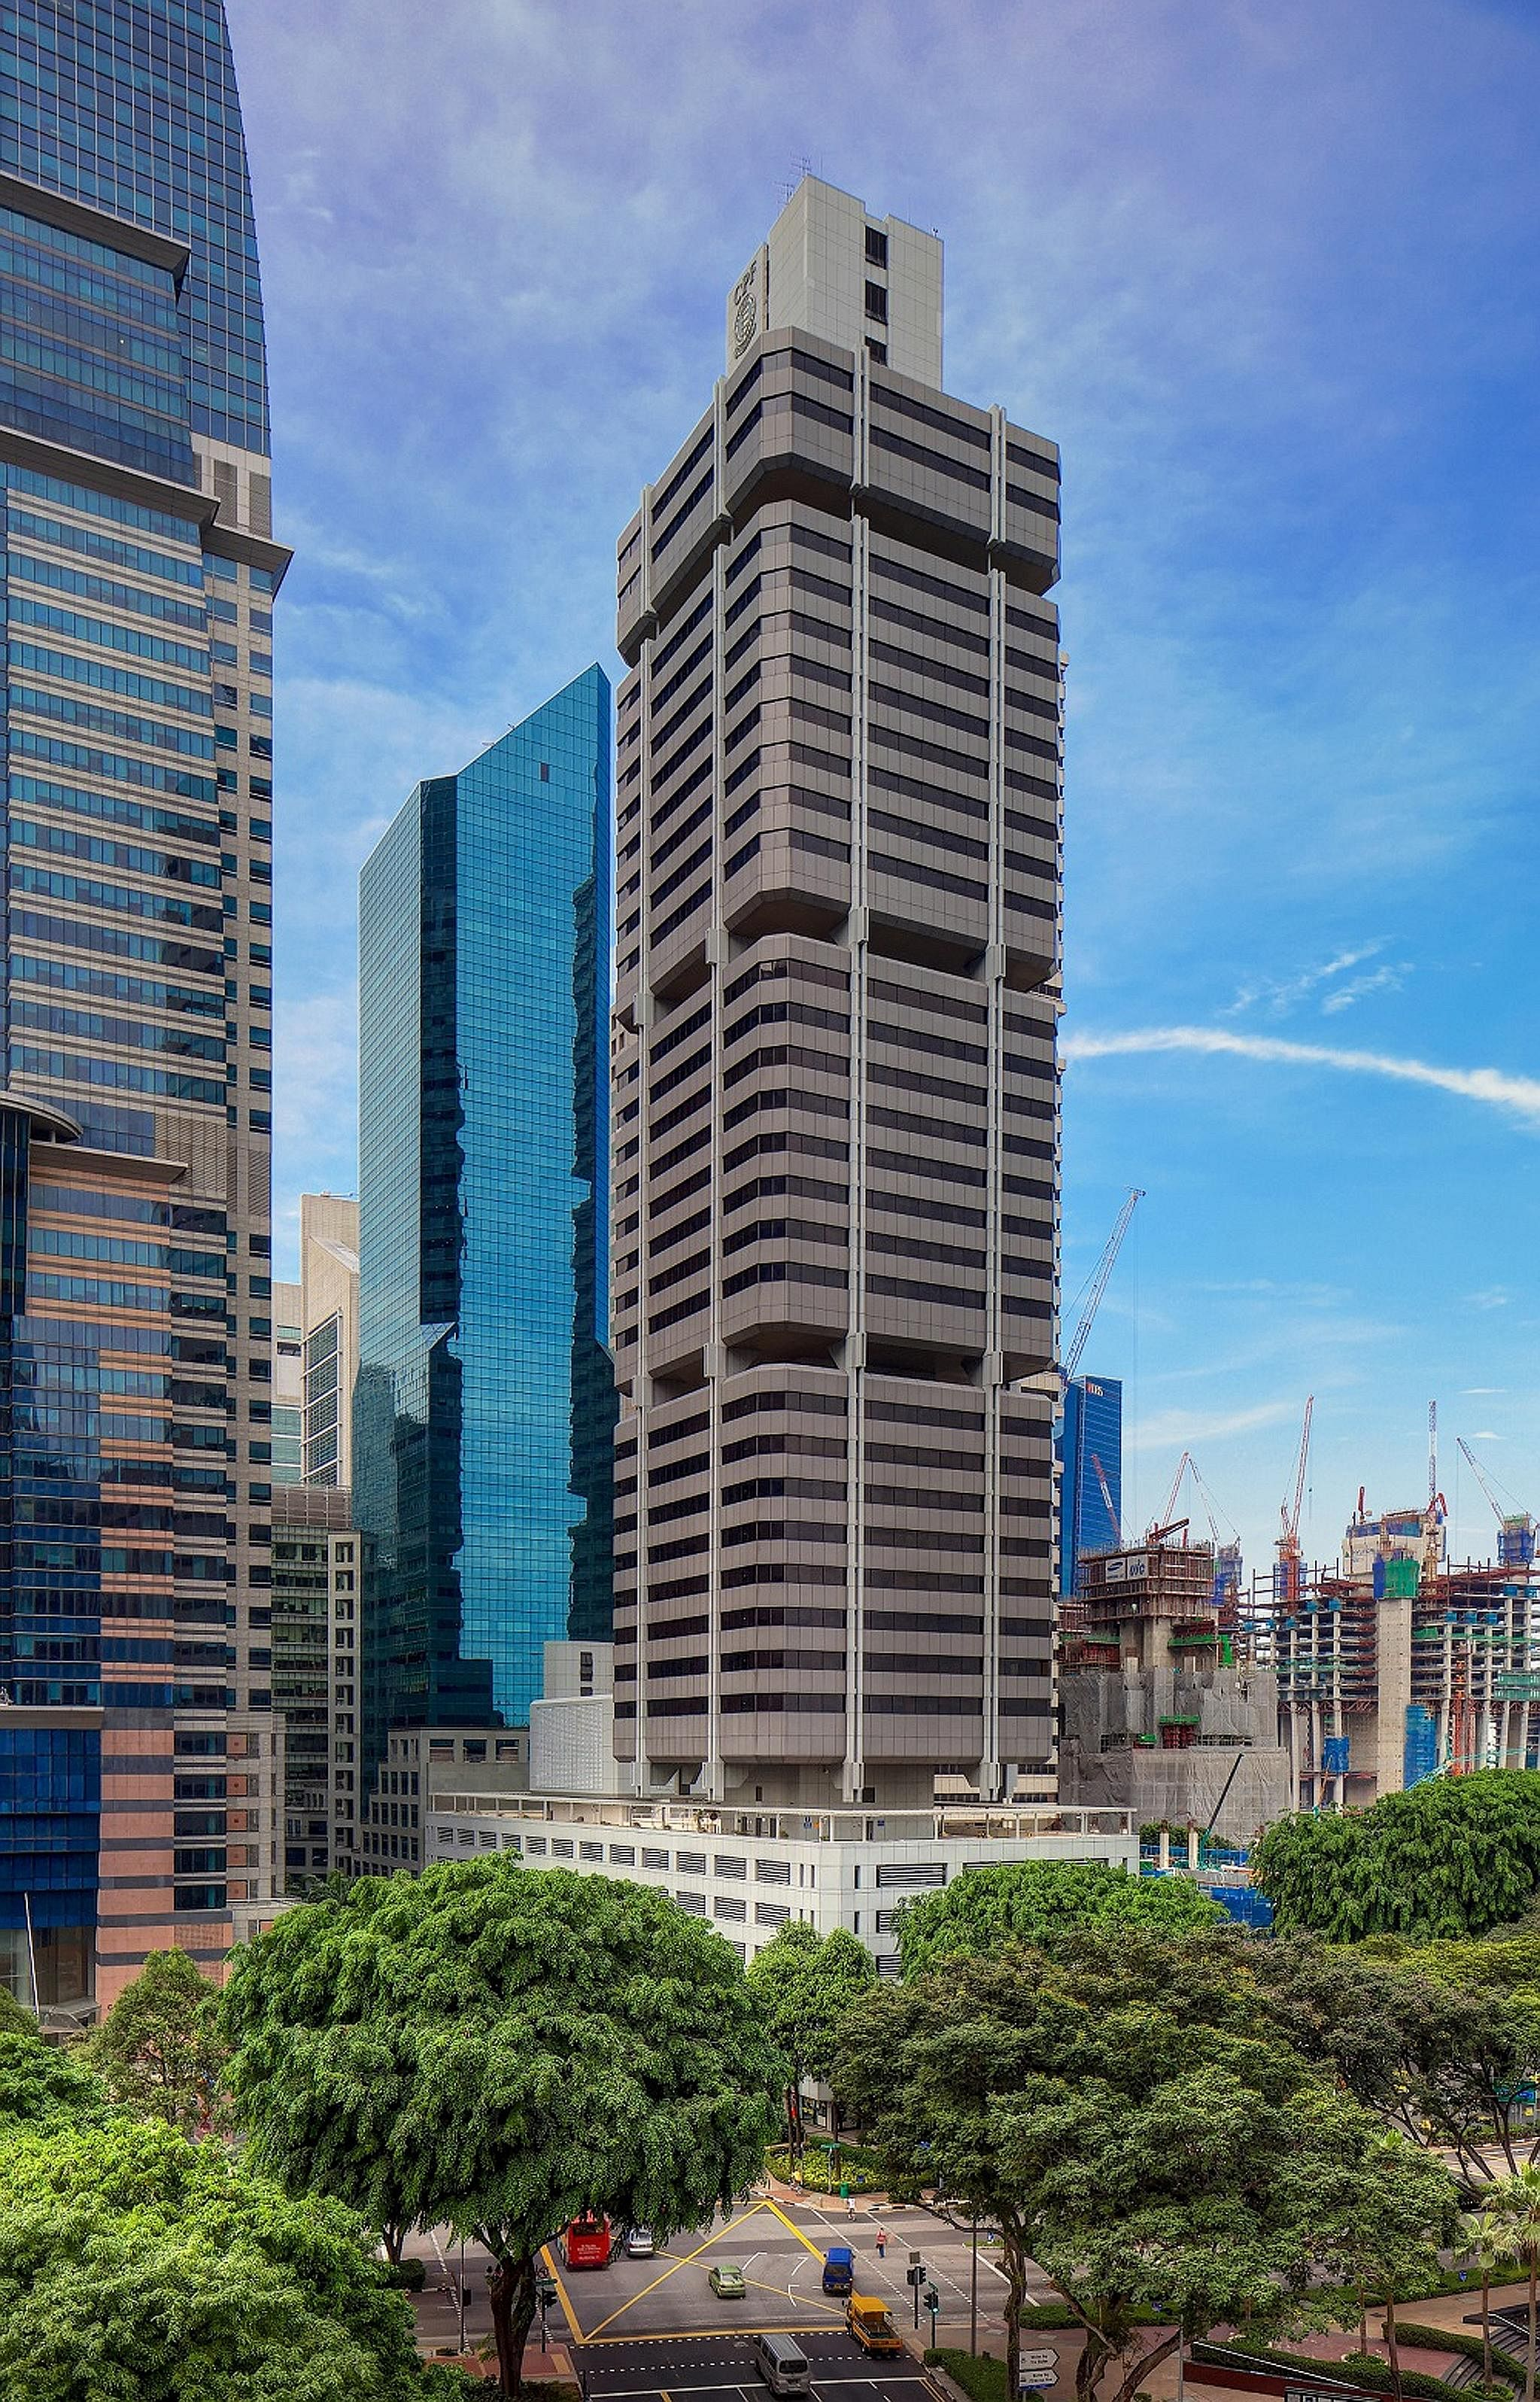 A prospective buyer could redevelop CPF Building (above) into a mixed-use development with office, retail, serviced apartments or possibly hotel, subject to approval, CBRE said.